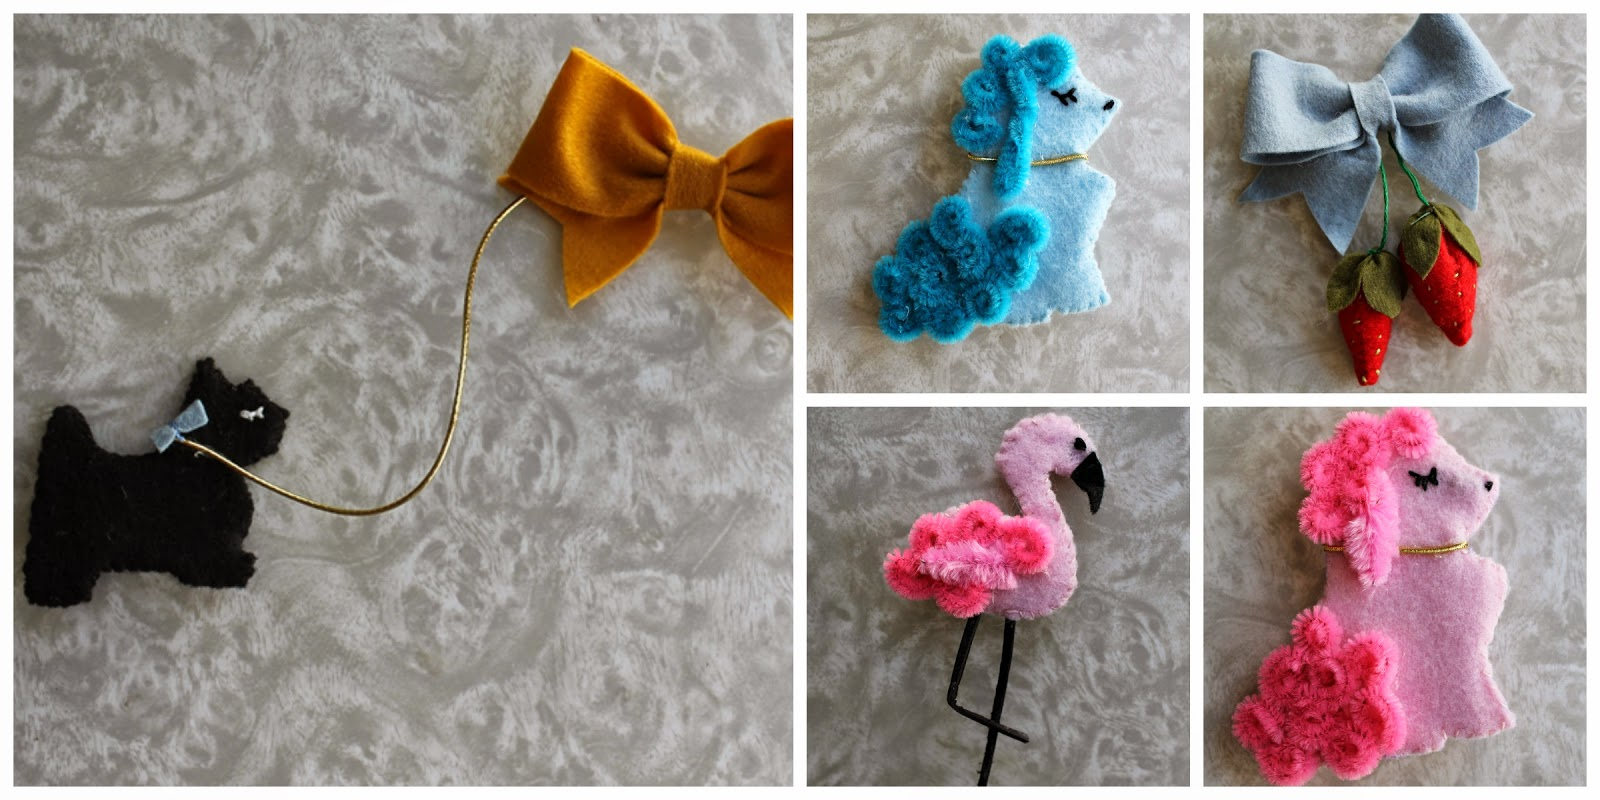 vintage felt novelty brooches handmade by wacky tuna vintage on etsy